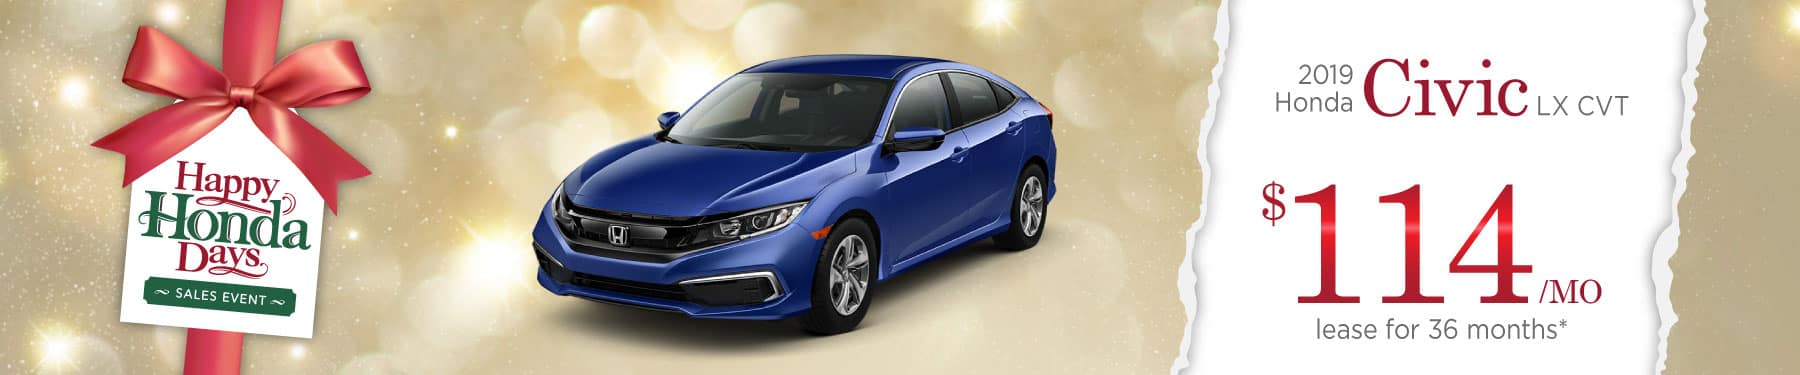 Header Photo of the 2019 Honda Civic